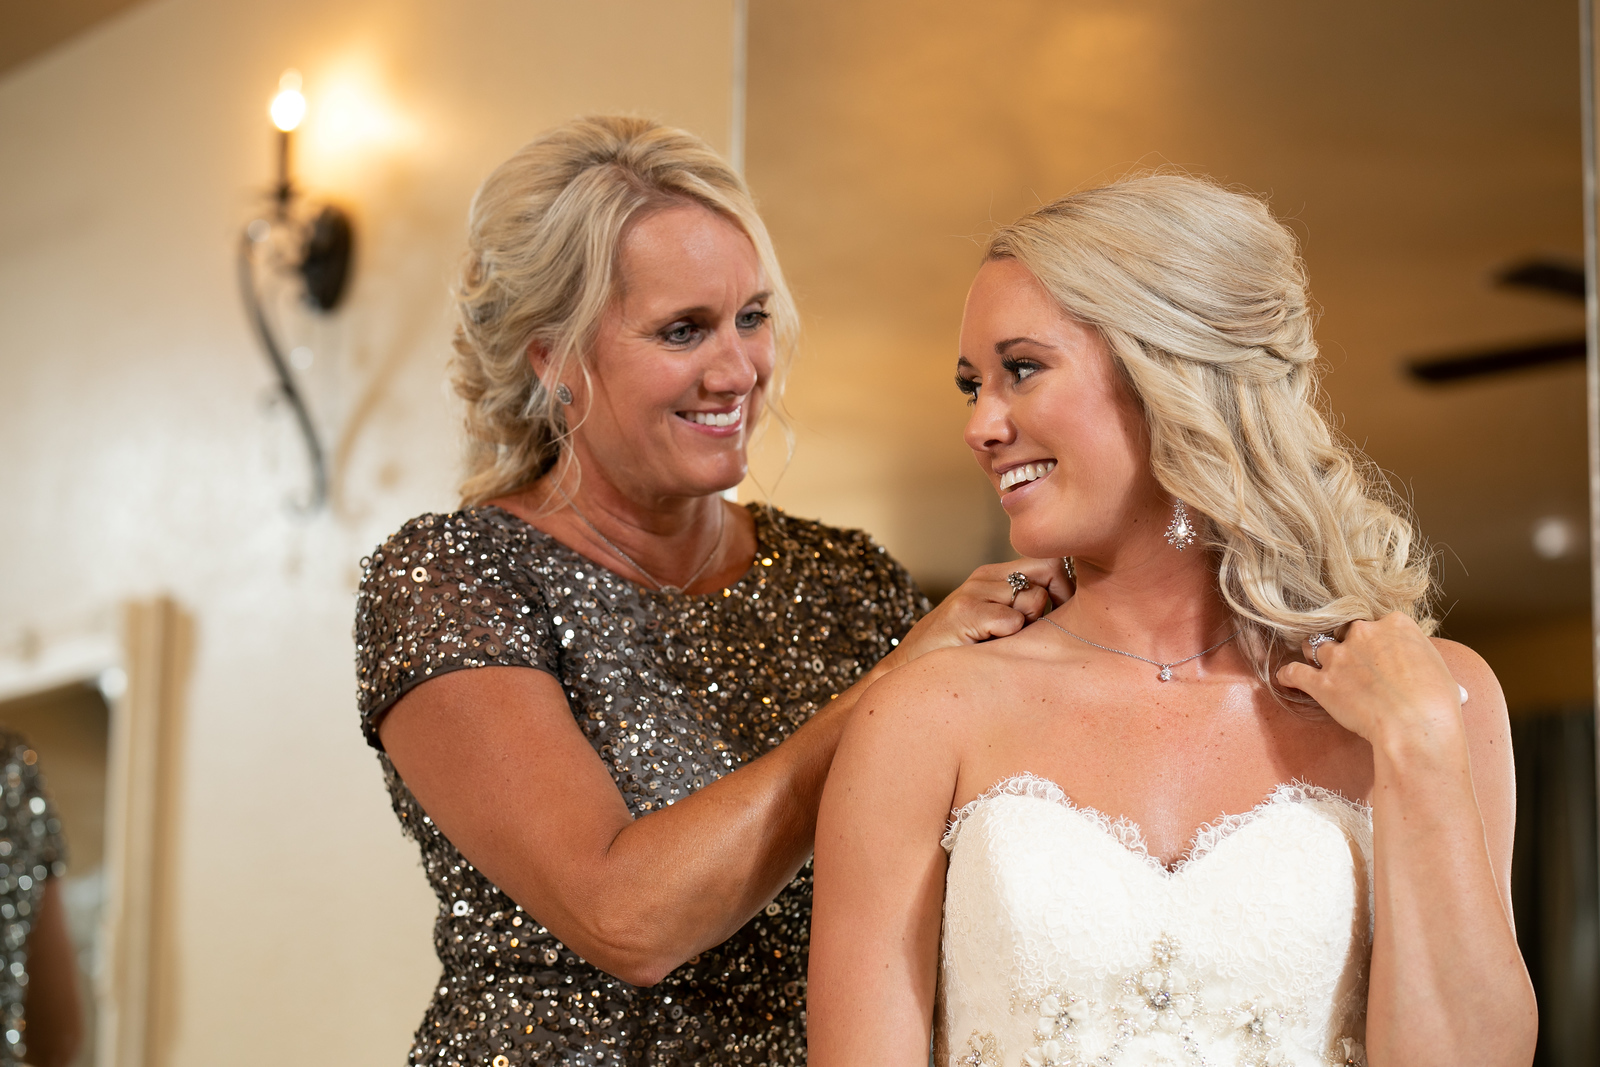 a mom putting a necklace on her daughter just before her wedding